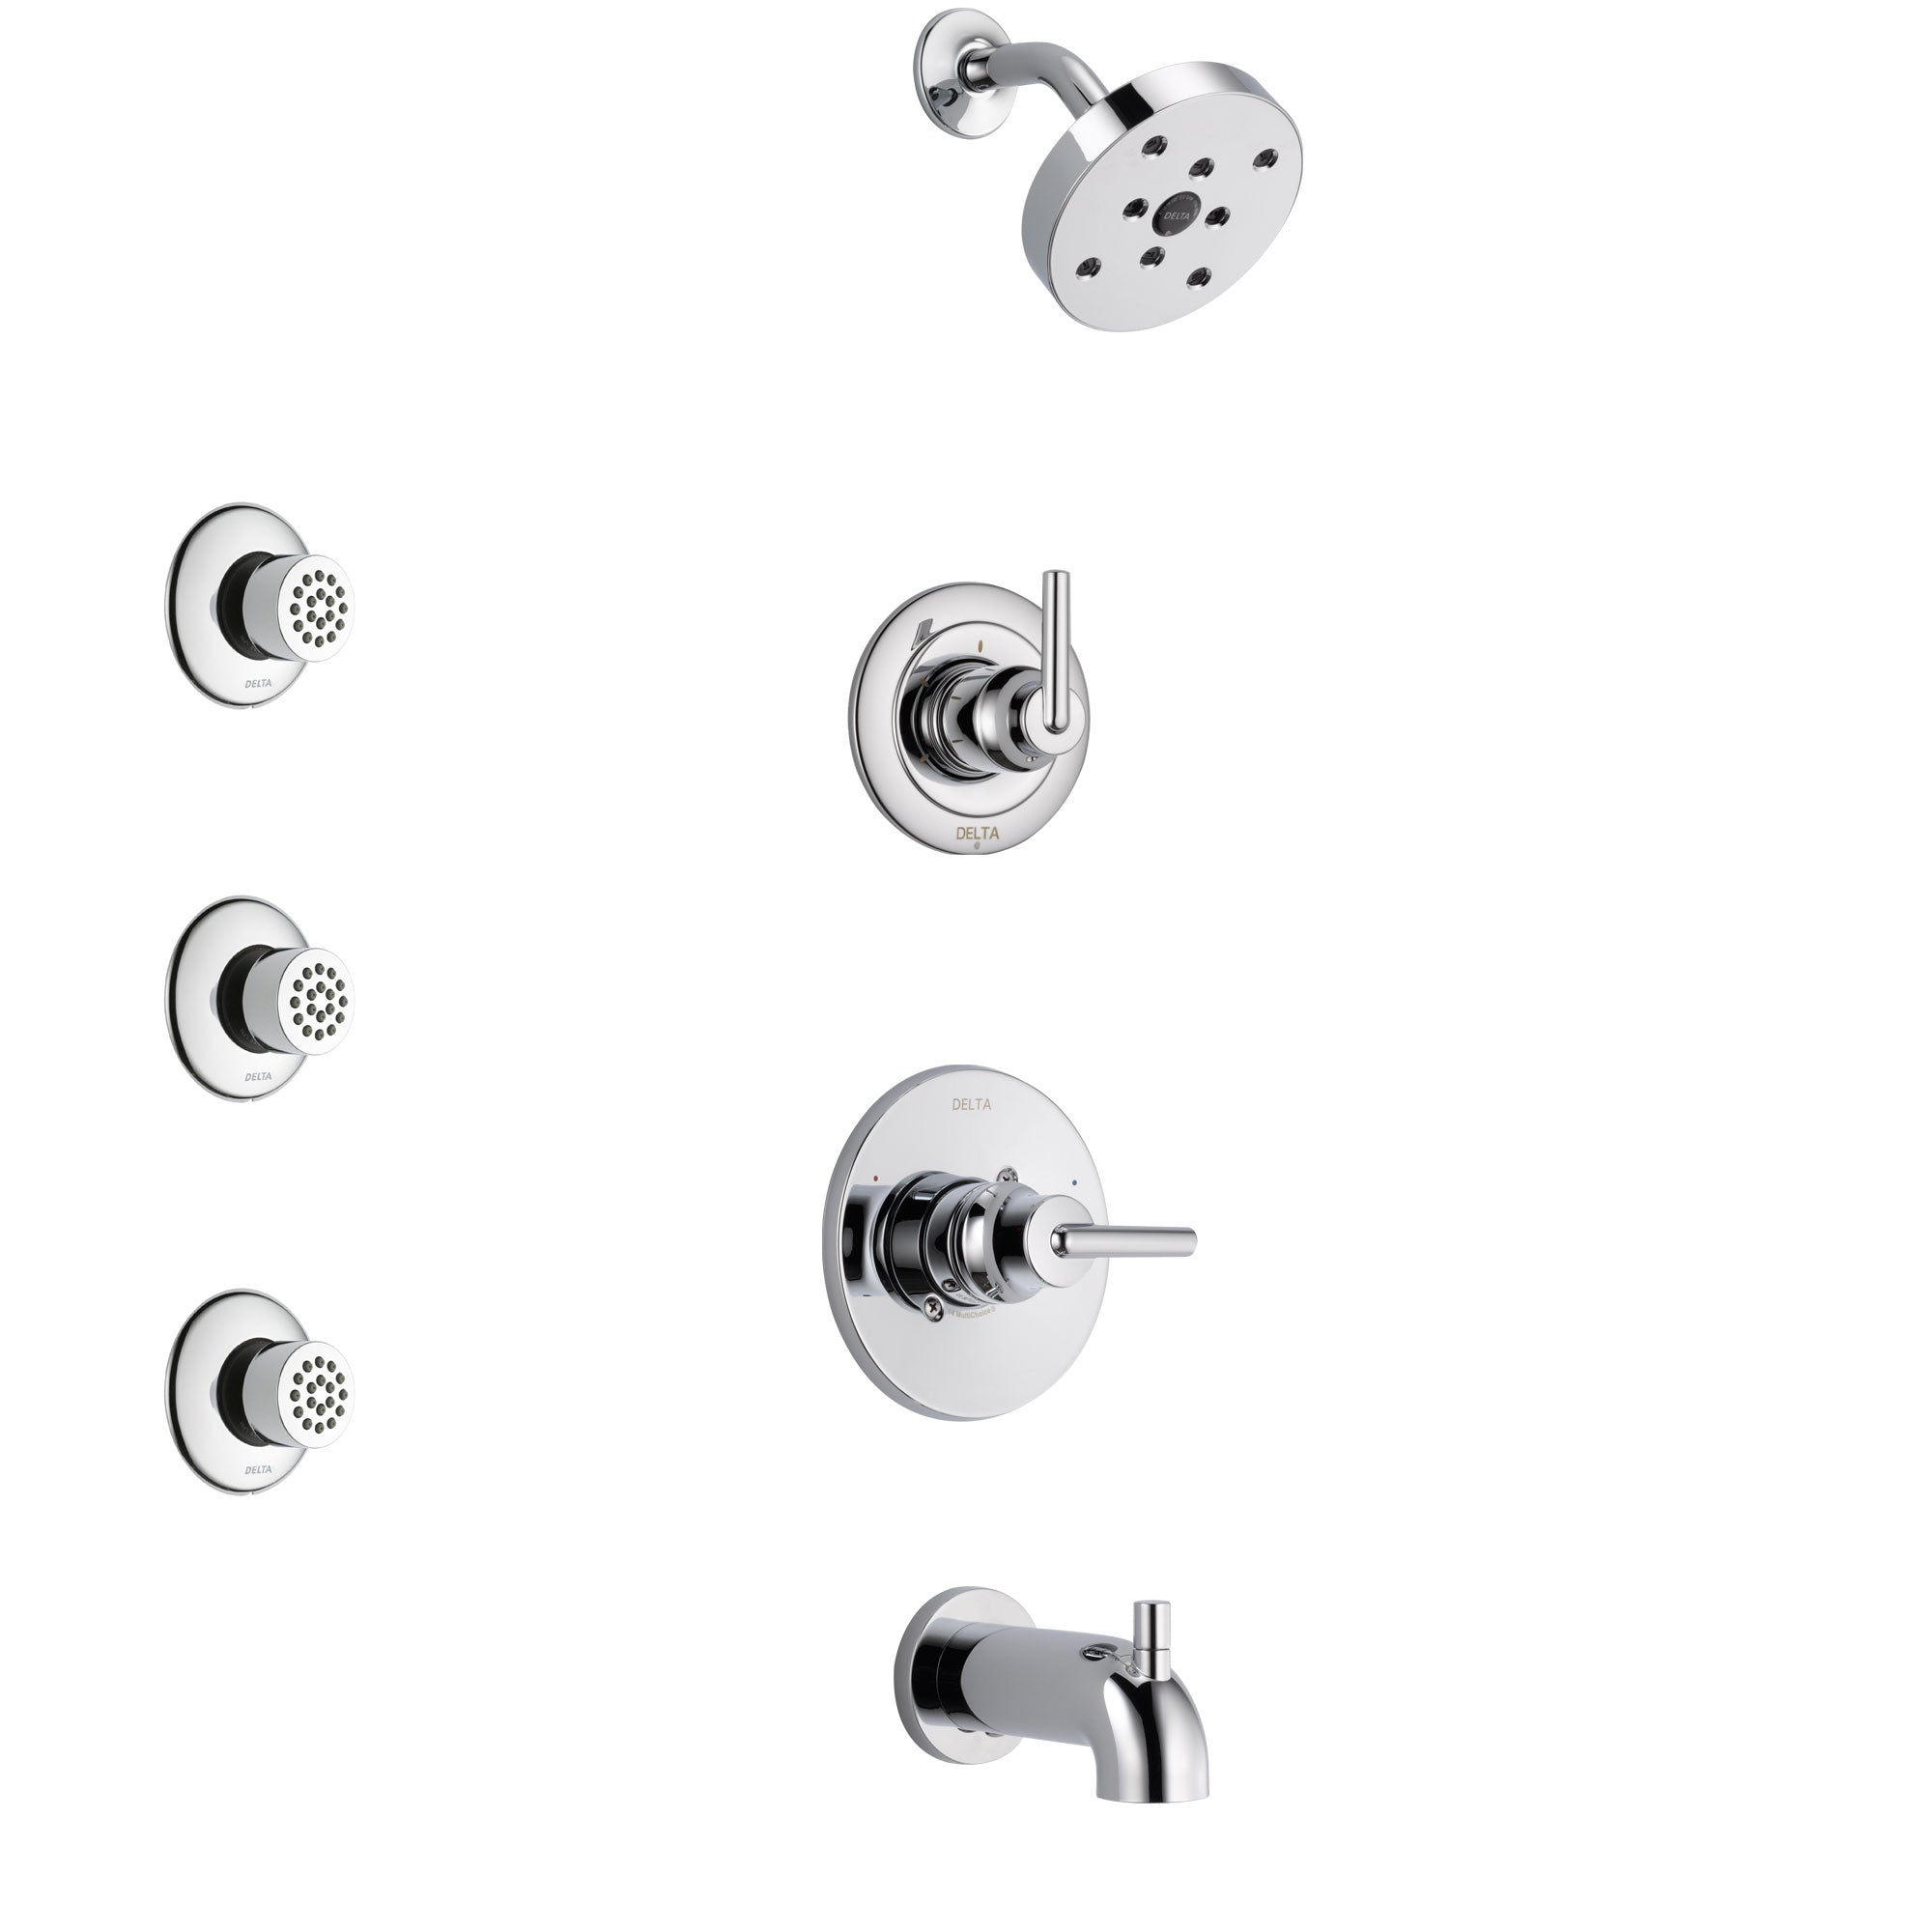 Delta Trinsic Chrome Finish Tub and Shower System with Control Handle, 3-Setting Diverter, Showerhead, and 3 Body Sprays SS144591